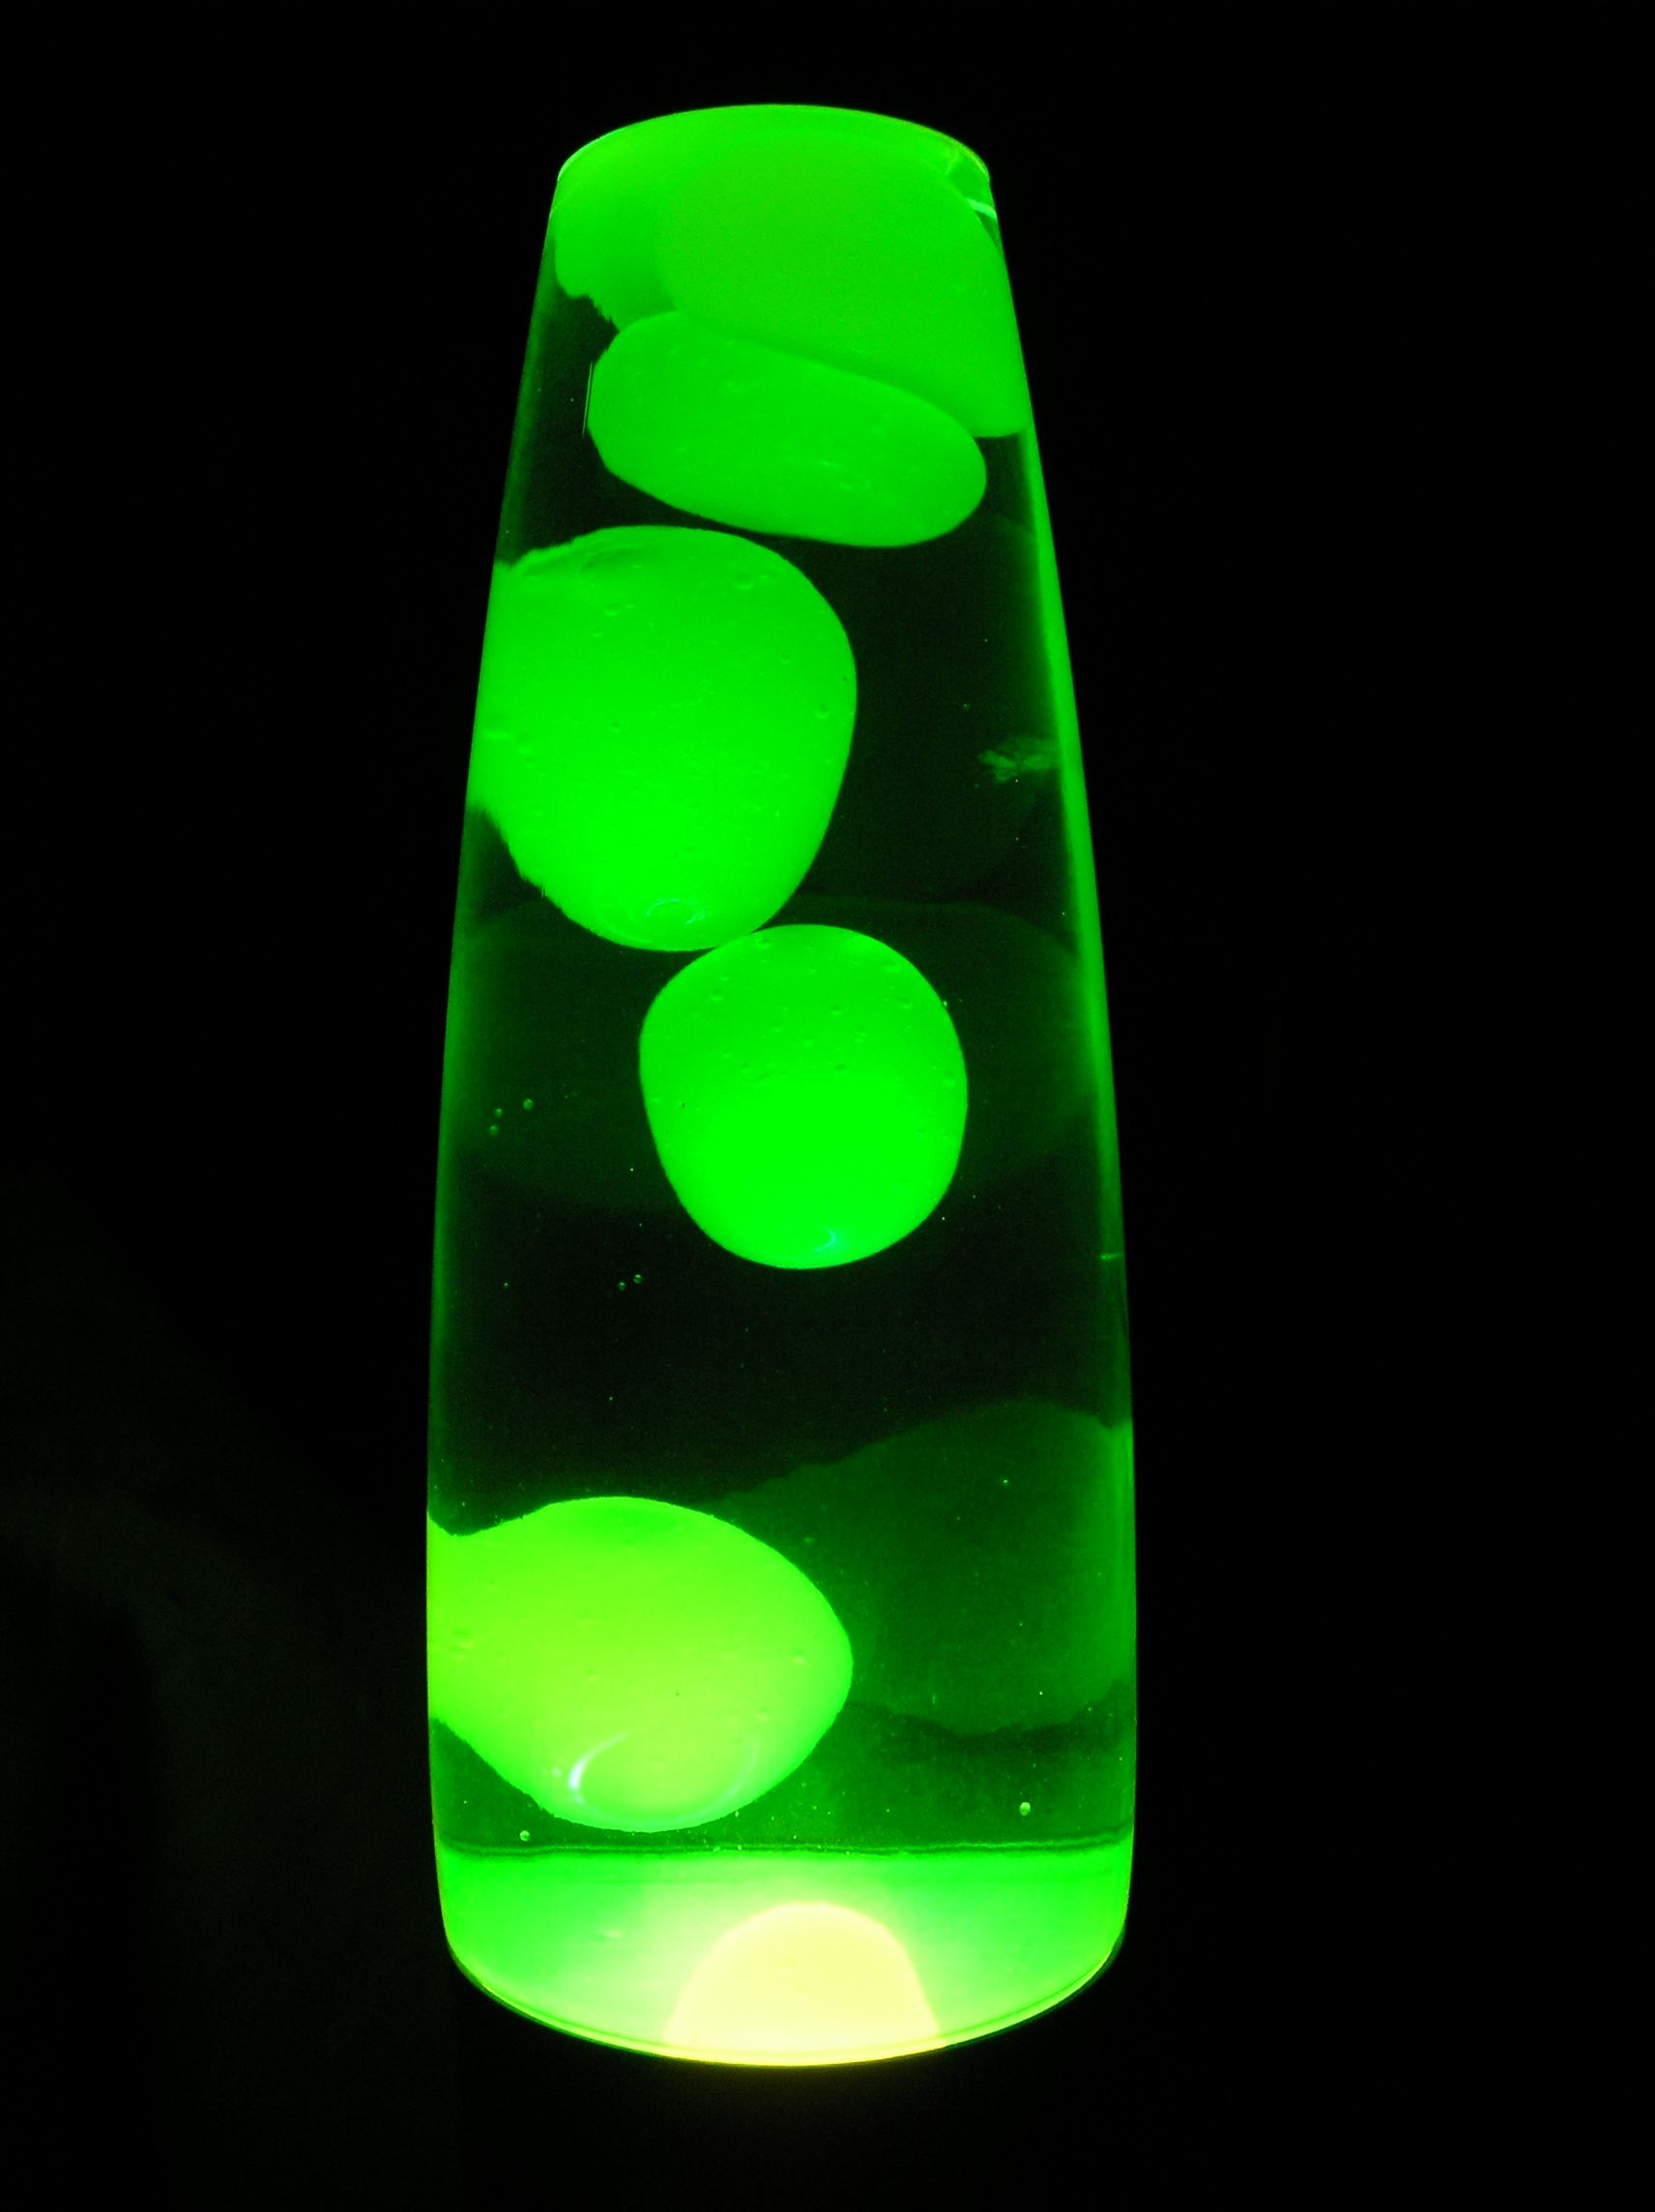 Cool Lava Lamps | Lava Lamp Wonders by WeirdBugLady on DeviantArt ... for Cool Lava Lamps In The Dark  557yll